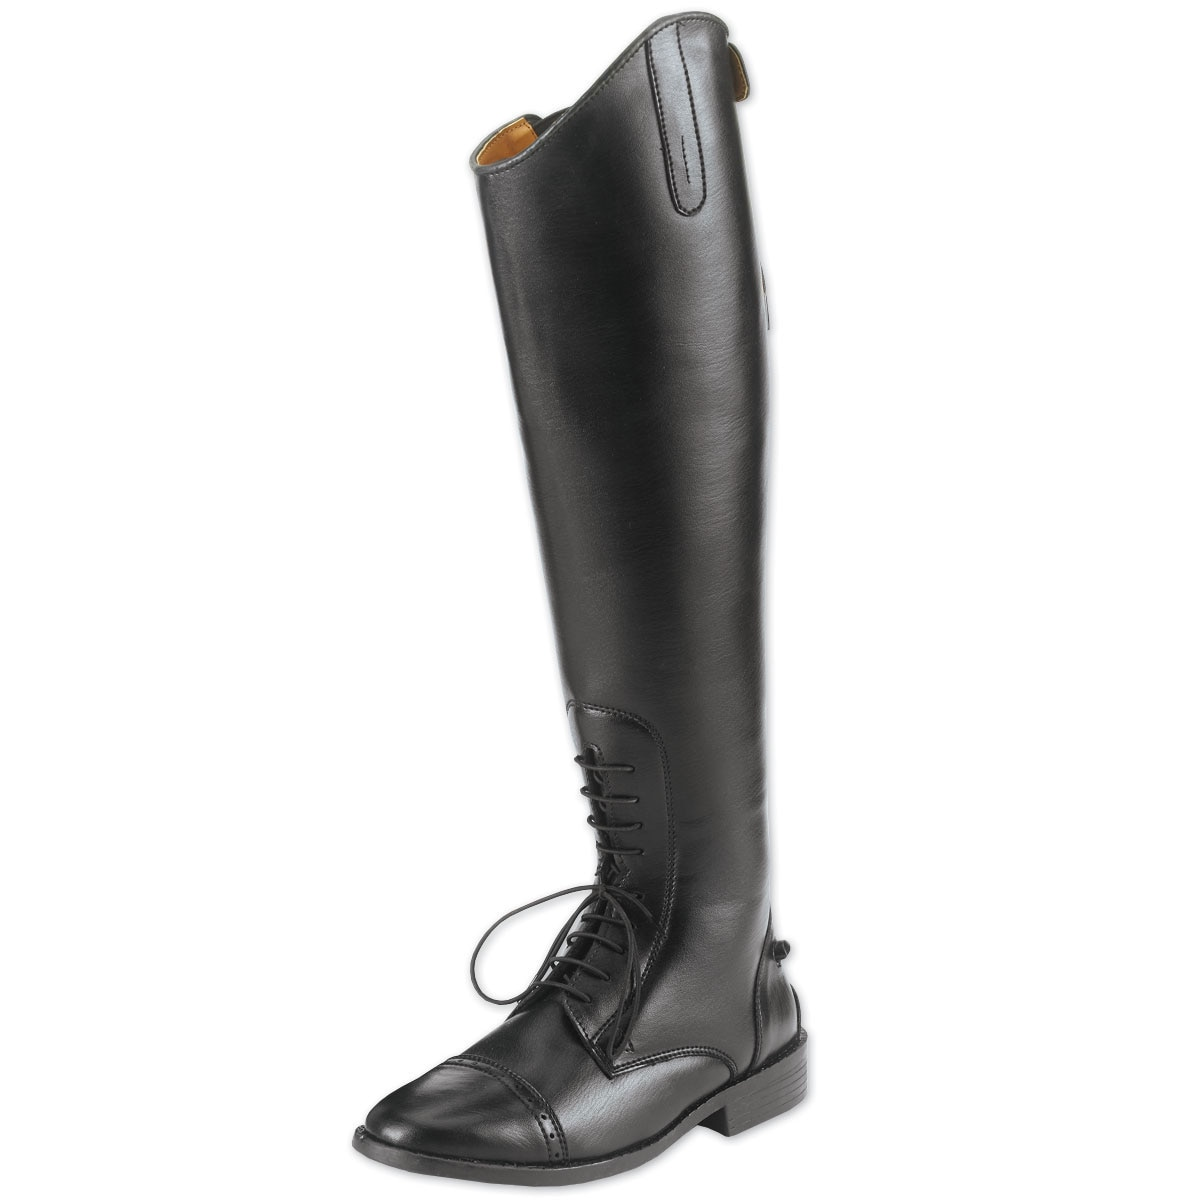 Equistar All Weather Child's Field Boot